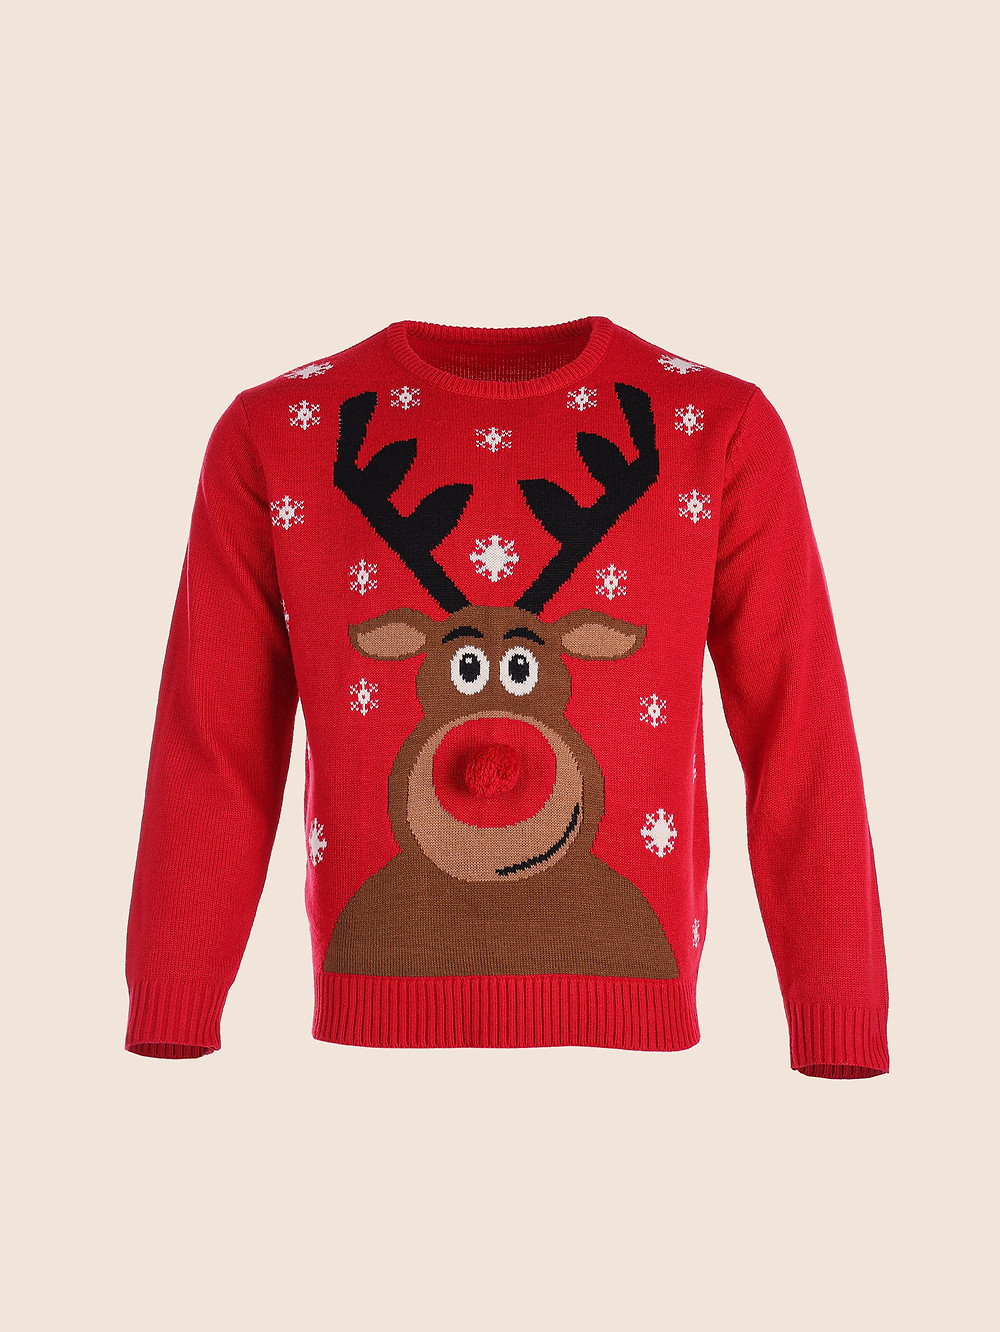 an ugly Christmas sweater